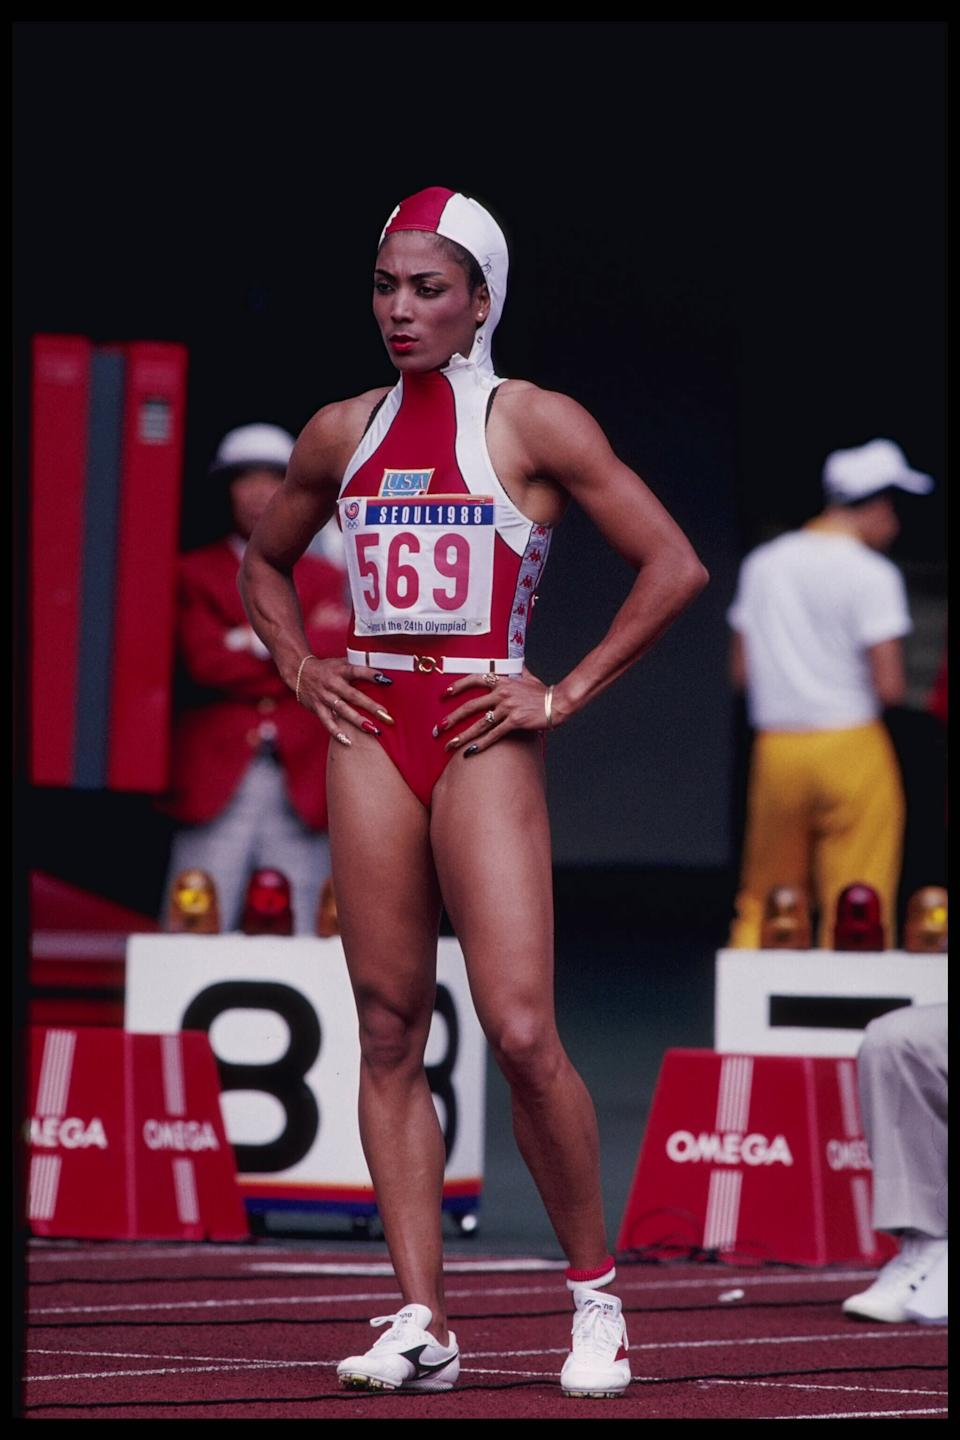 24 Sep 1988:  Florence Griffith-Joyner of the USA prepares for the 100m during the 1988 Summer Olympics in Seoul, Korea.  Griffith-Joyner went on to win the gold medal with a time of 10.54 seconds.  Mandatory Credit:  Tony Duffy/Allsport